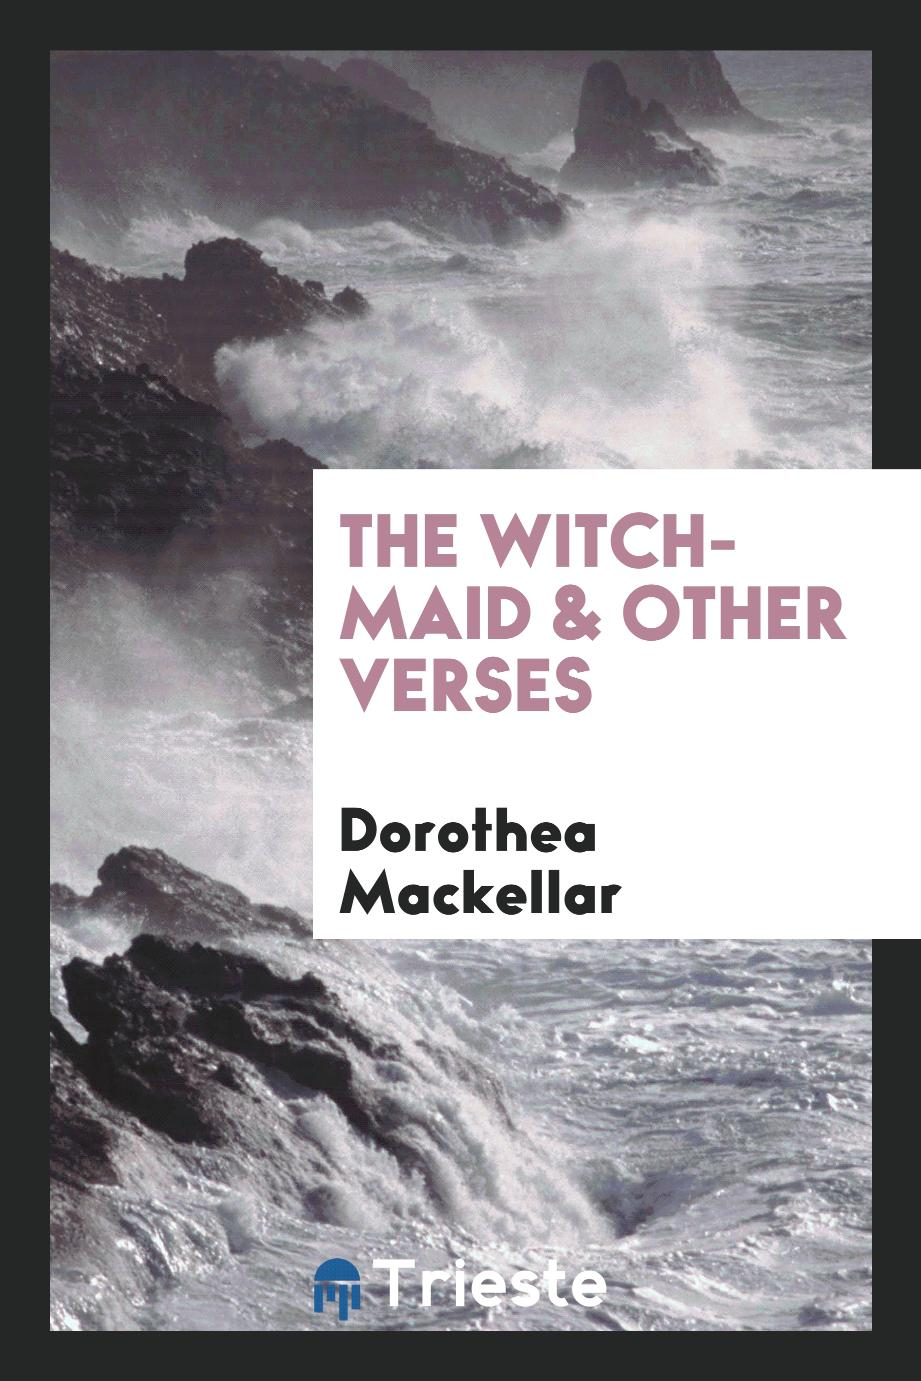 The witch-maid & other verses